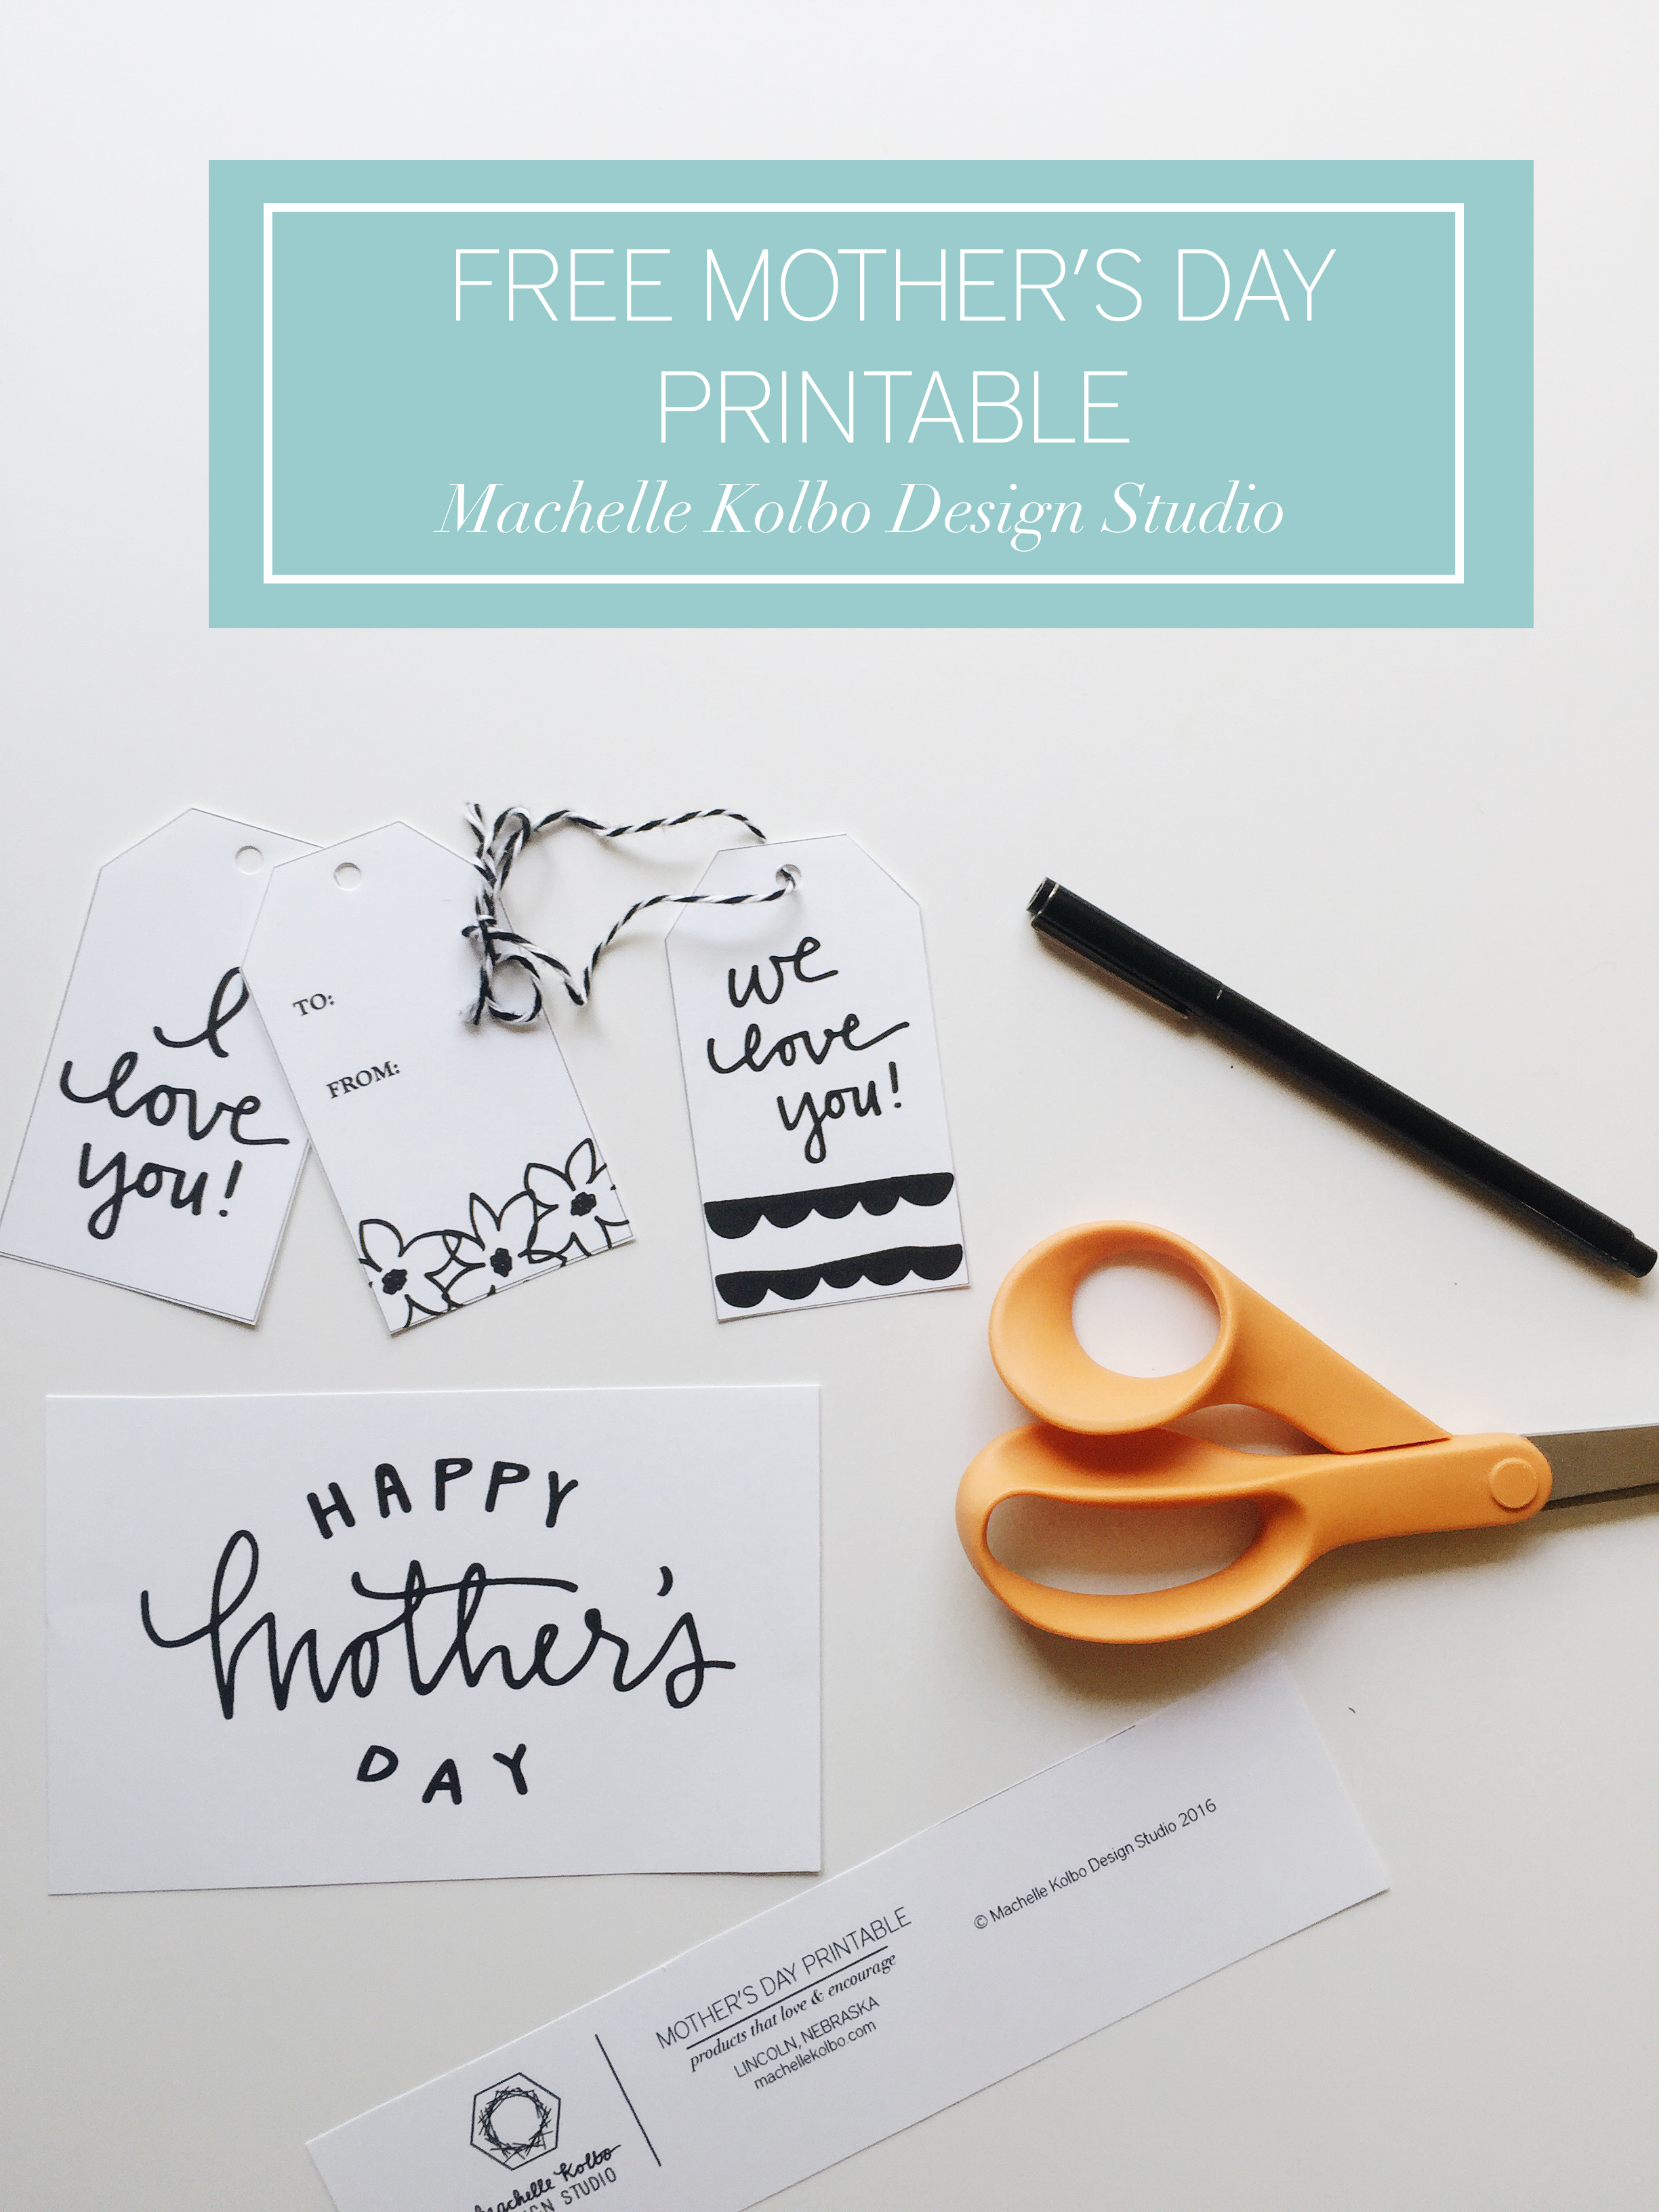 Free Mother's Day Printable // Machelle Kolbo Design Studio